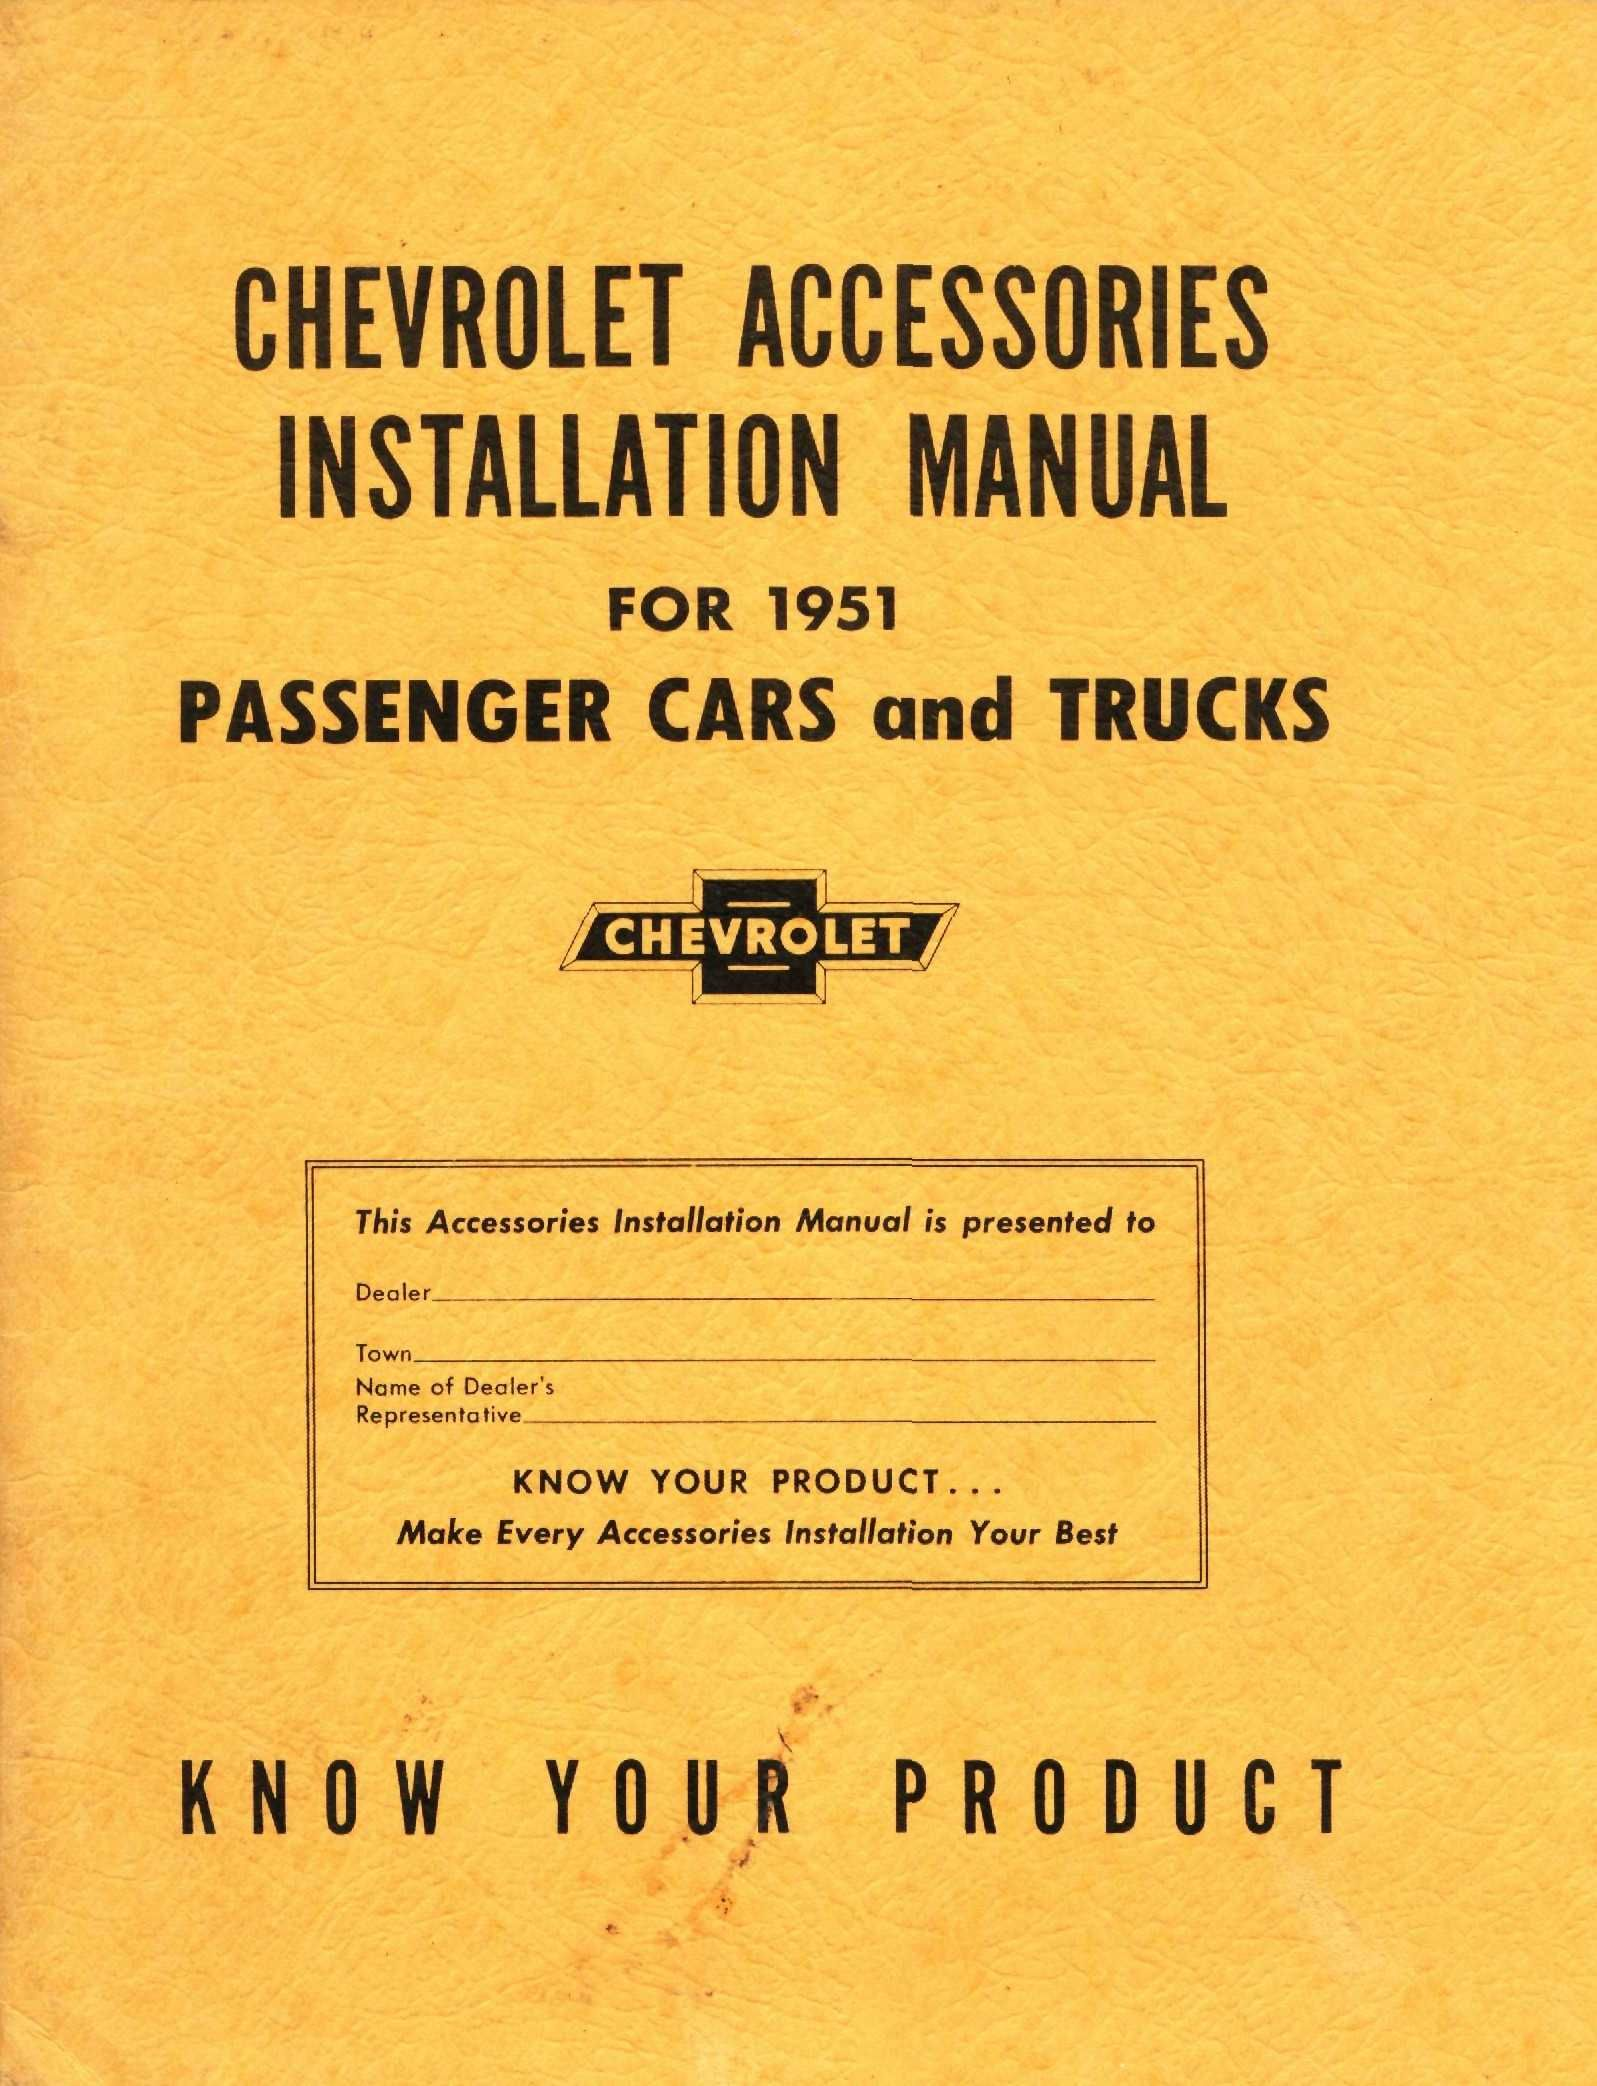 1951 Chevy Accessory Installation Manual Chevrolet Accessories